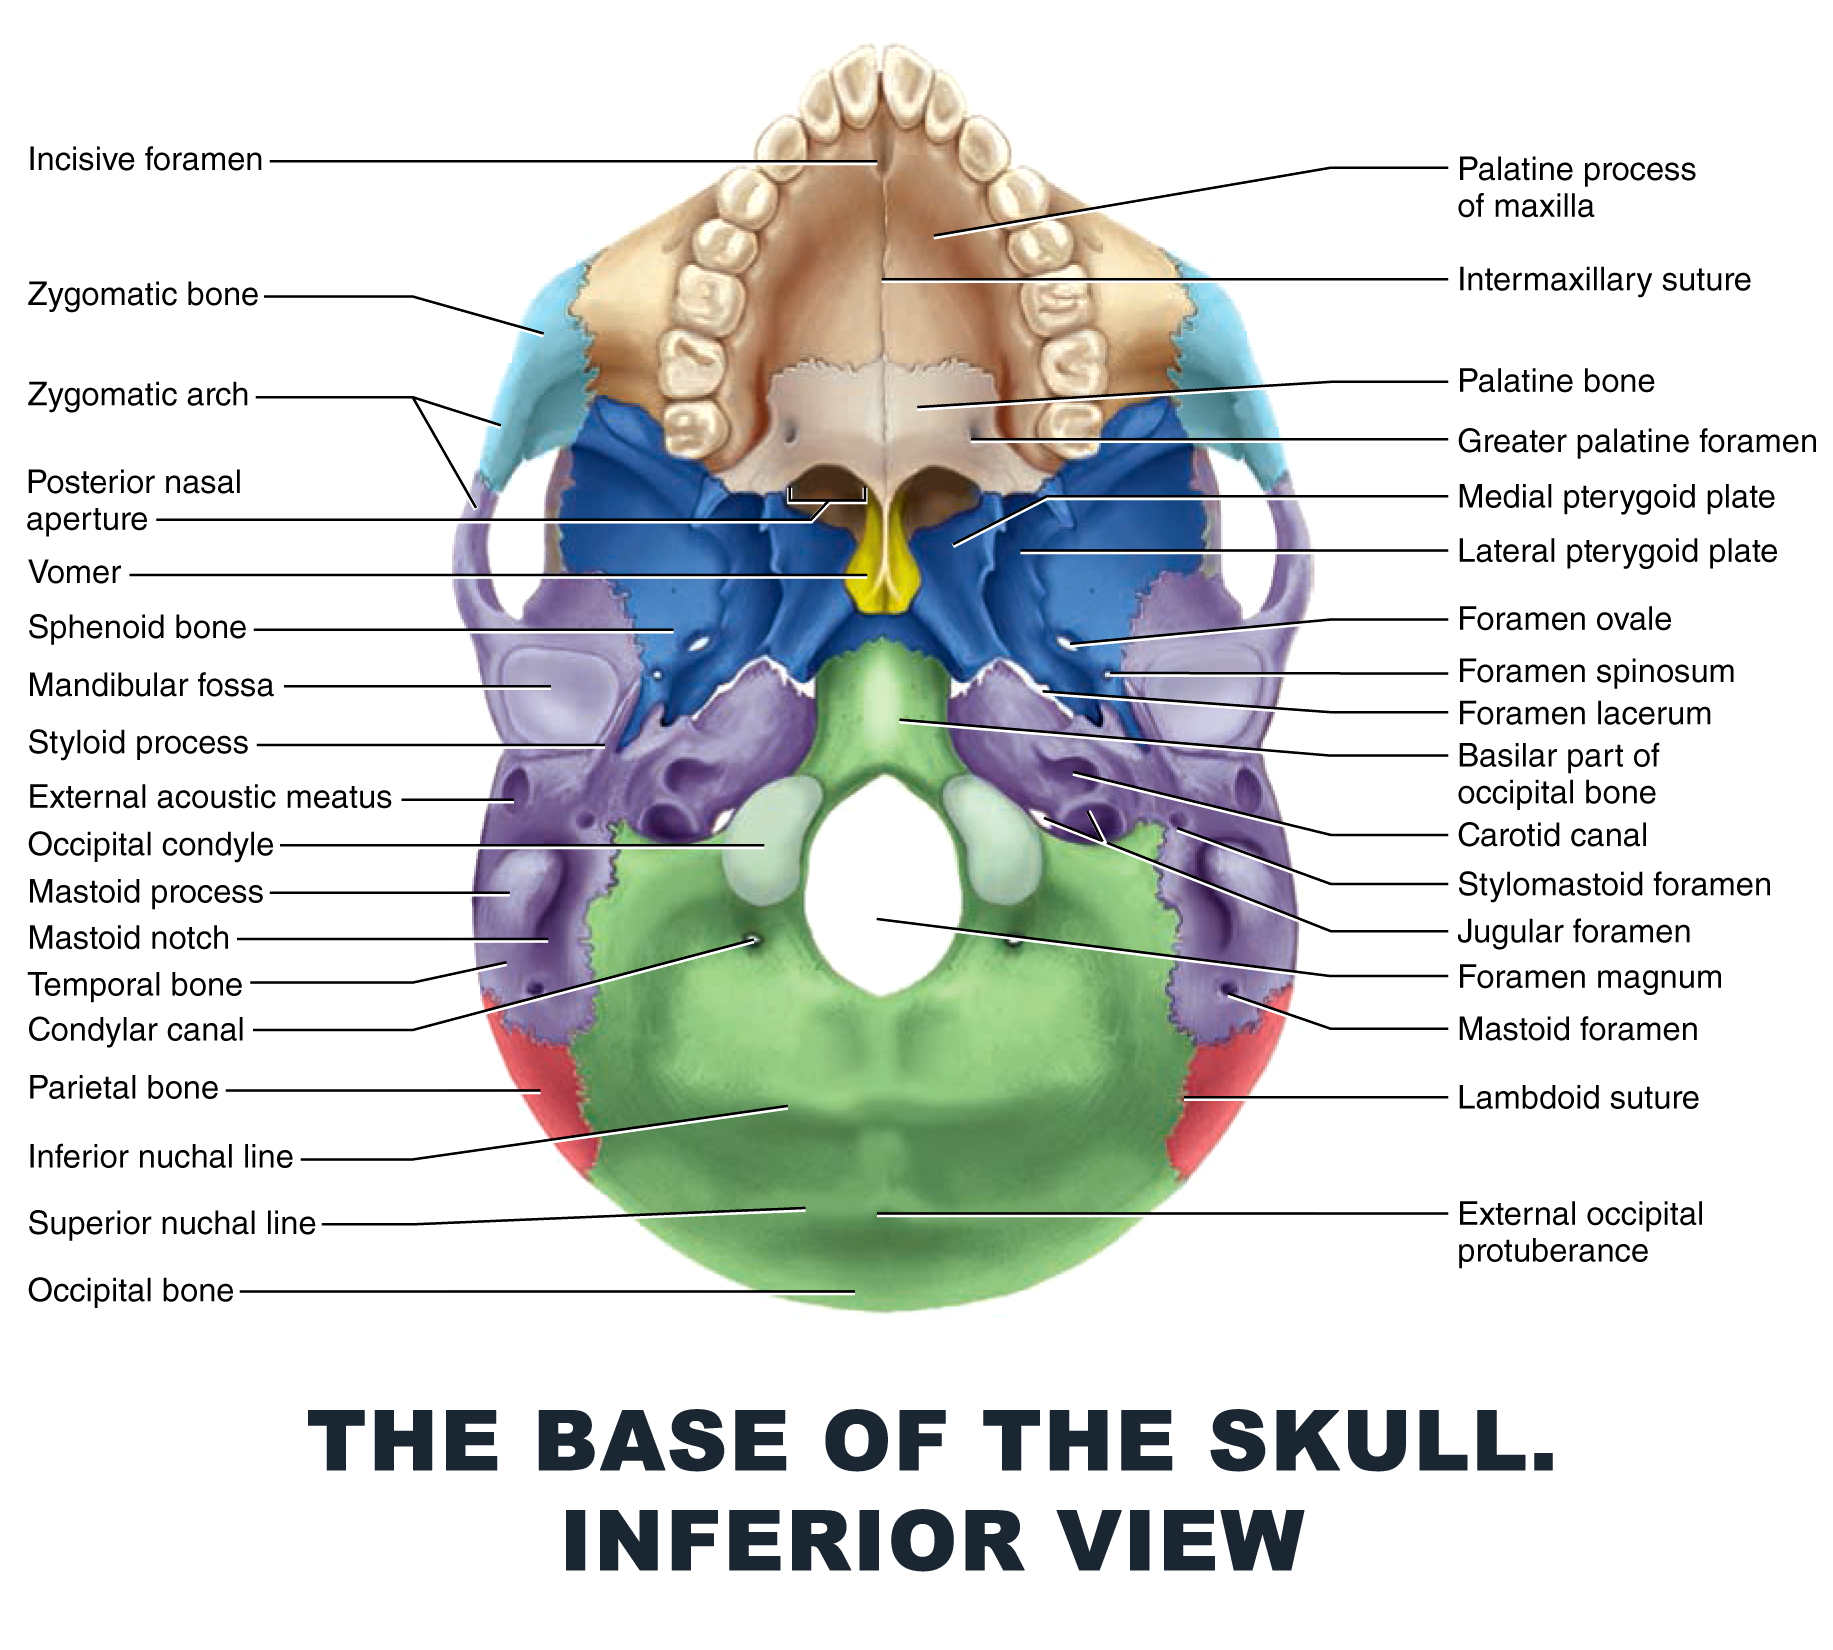 The Base of the Skull. Inferior view - #anatomy images illustrations ...